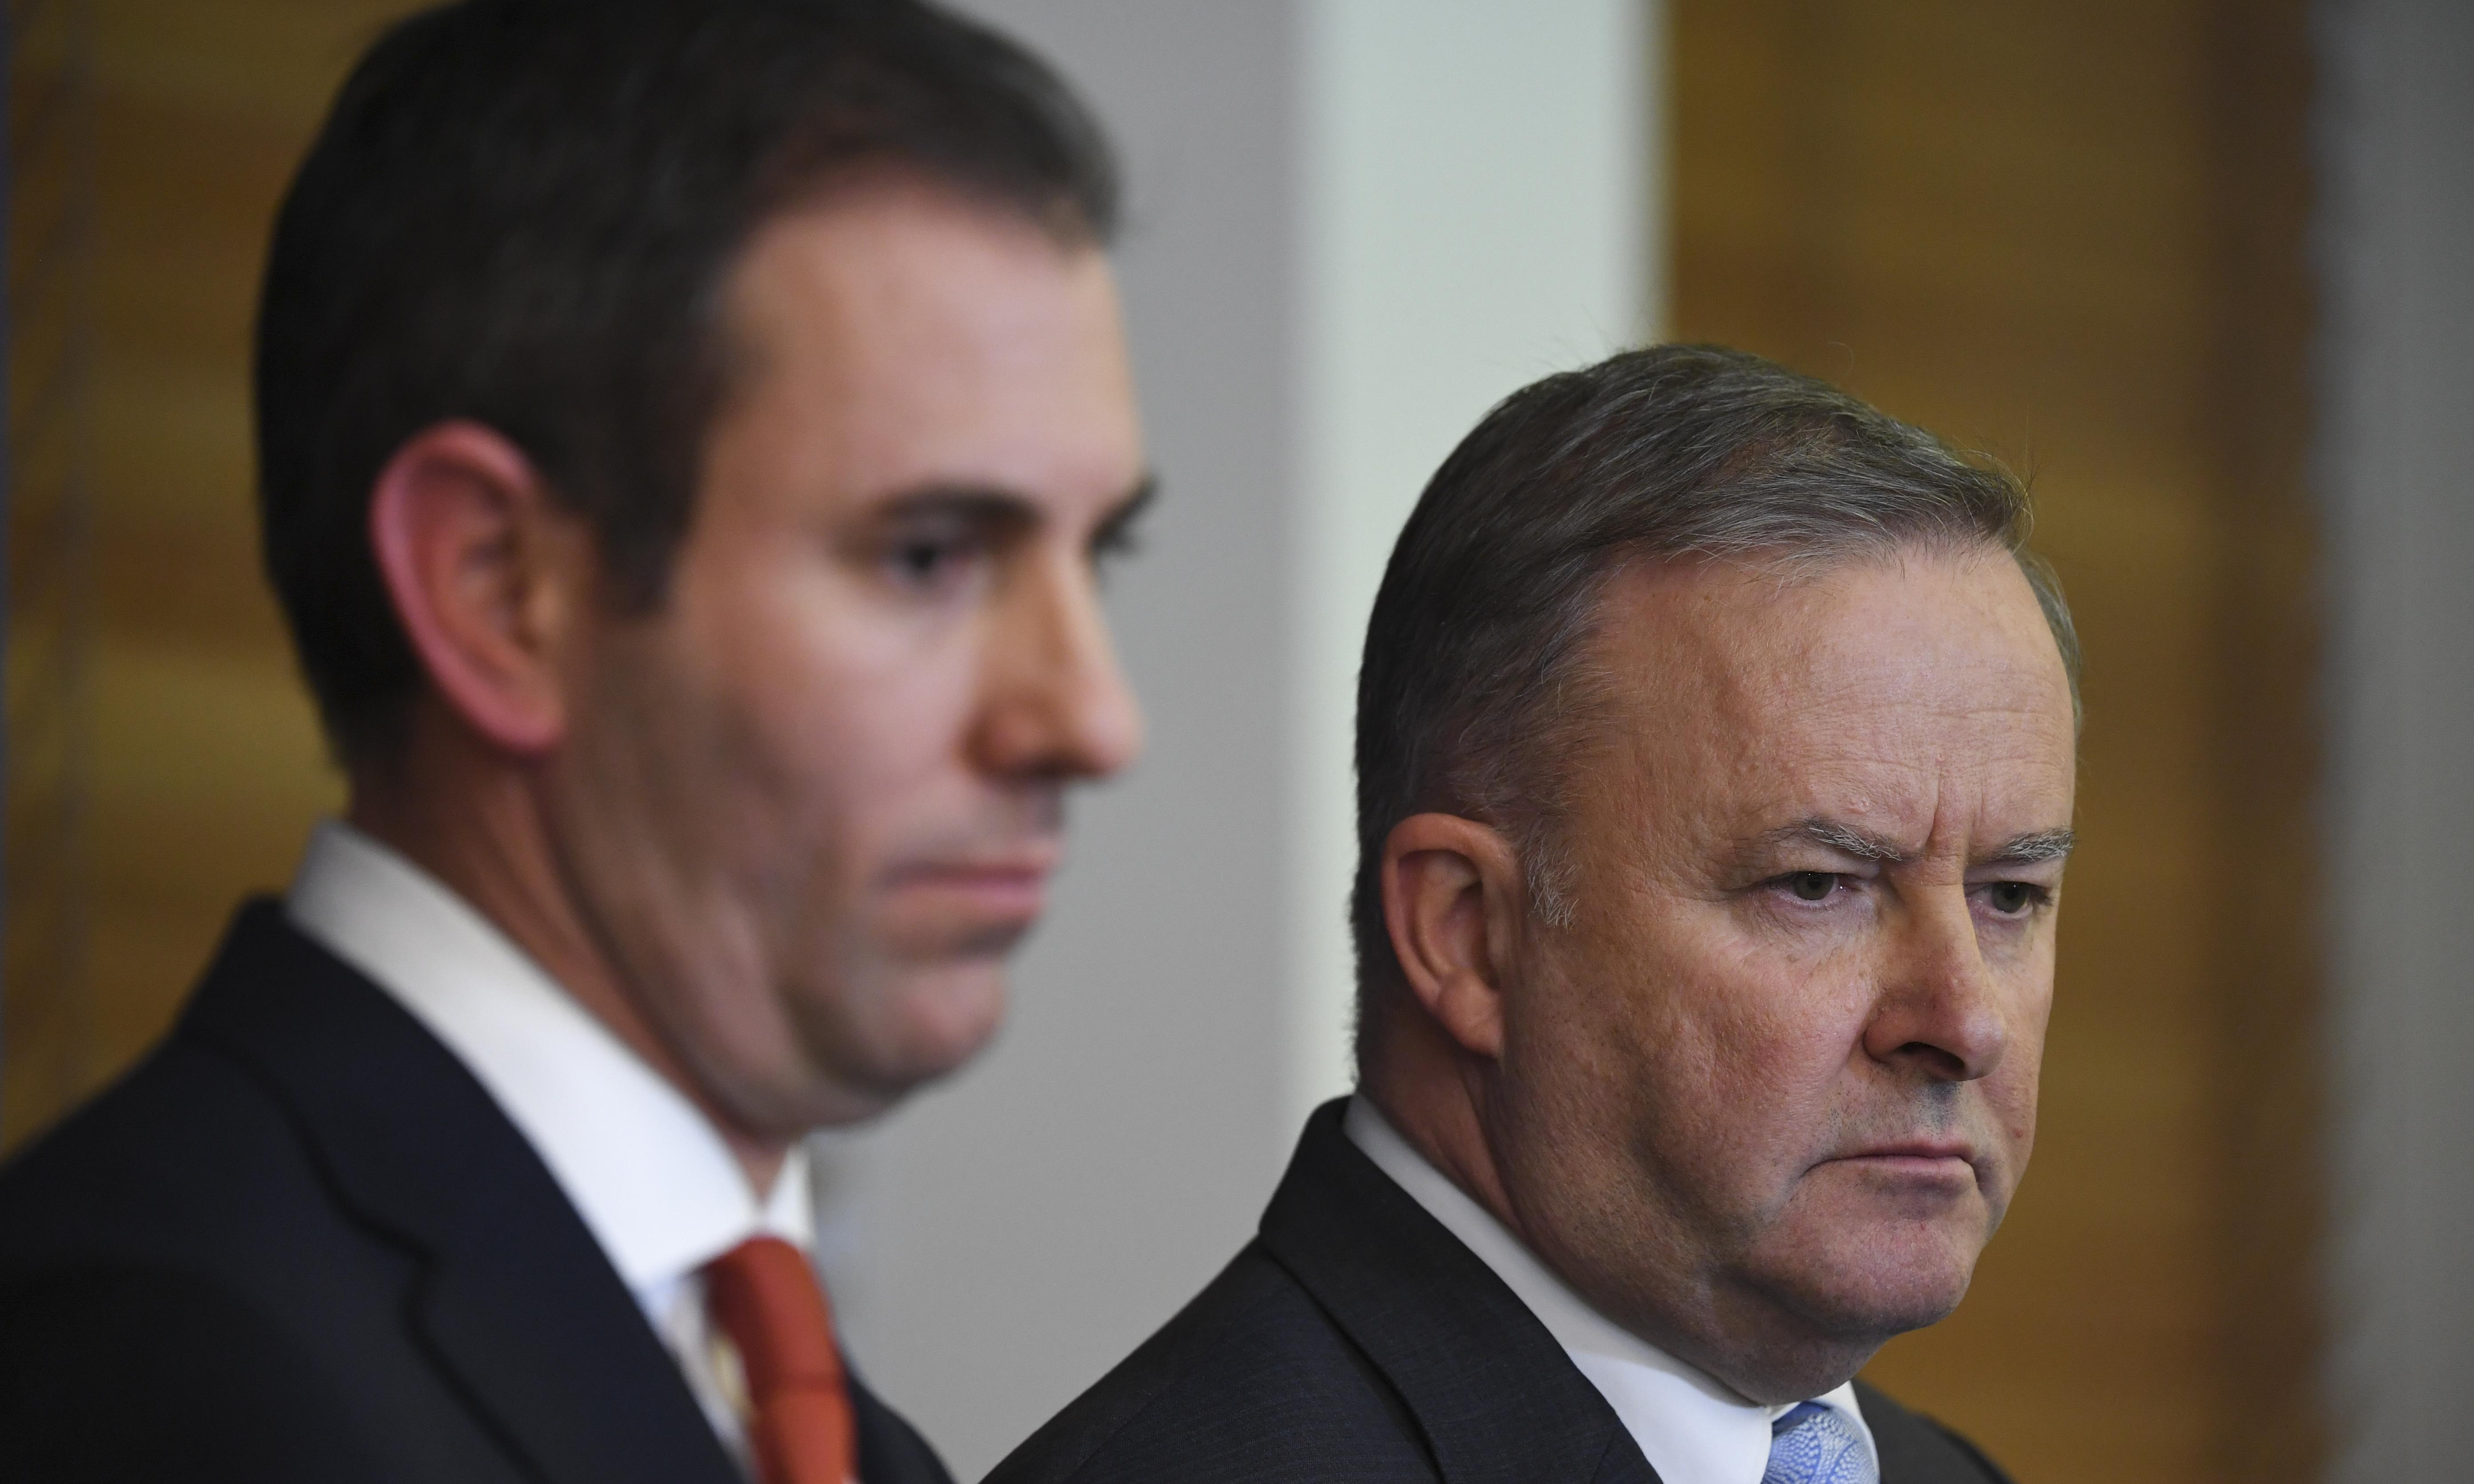 Labor must lead the fight to increase Newstart. Otherwise, what's the point of it?